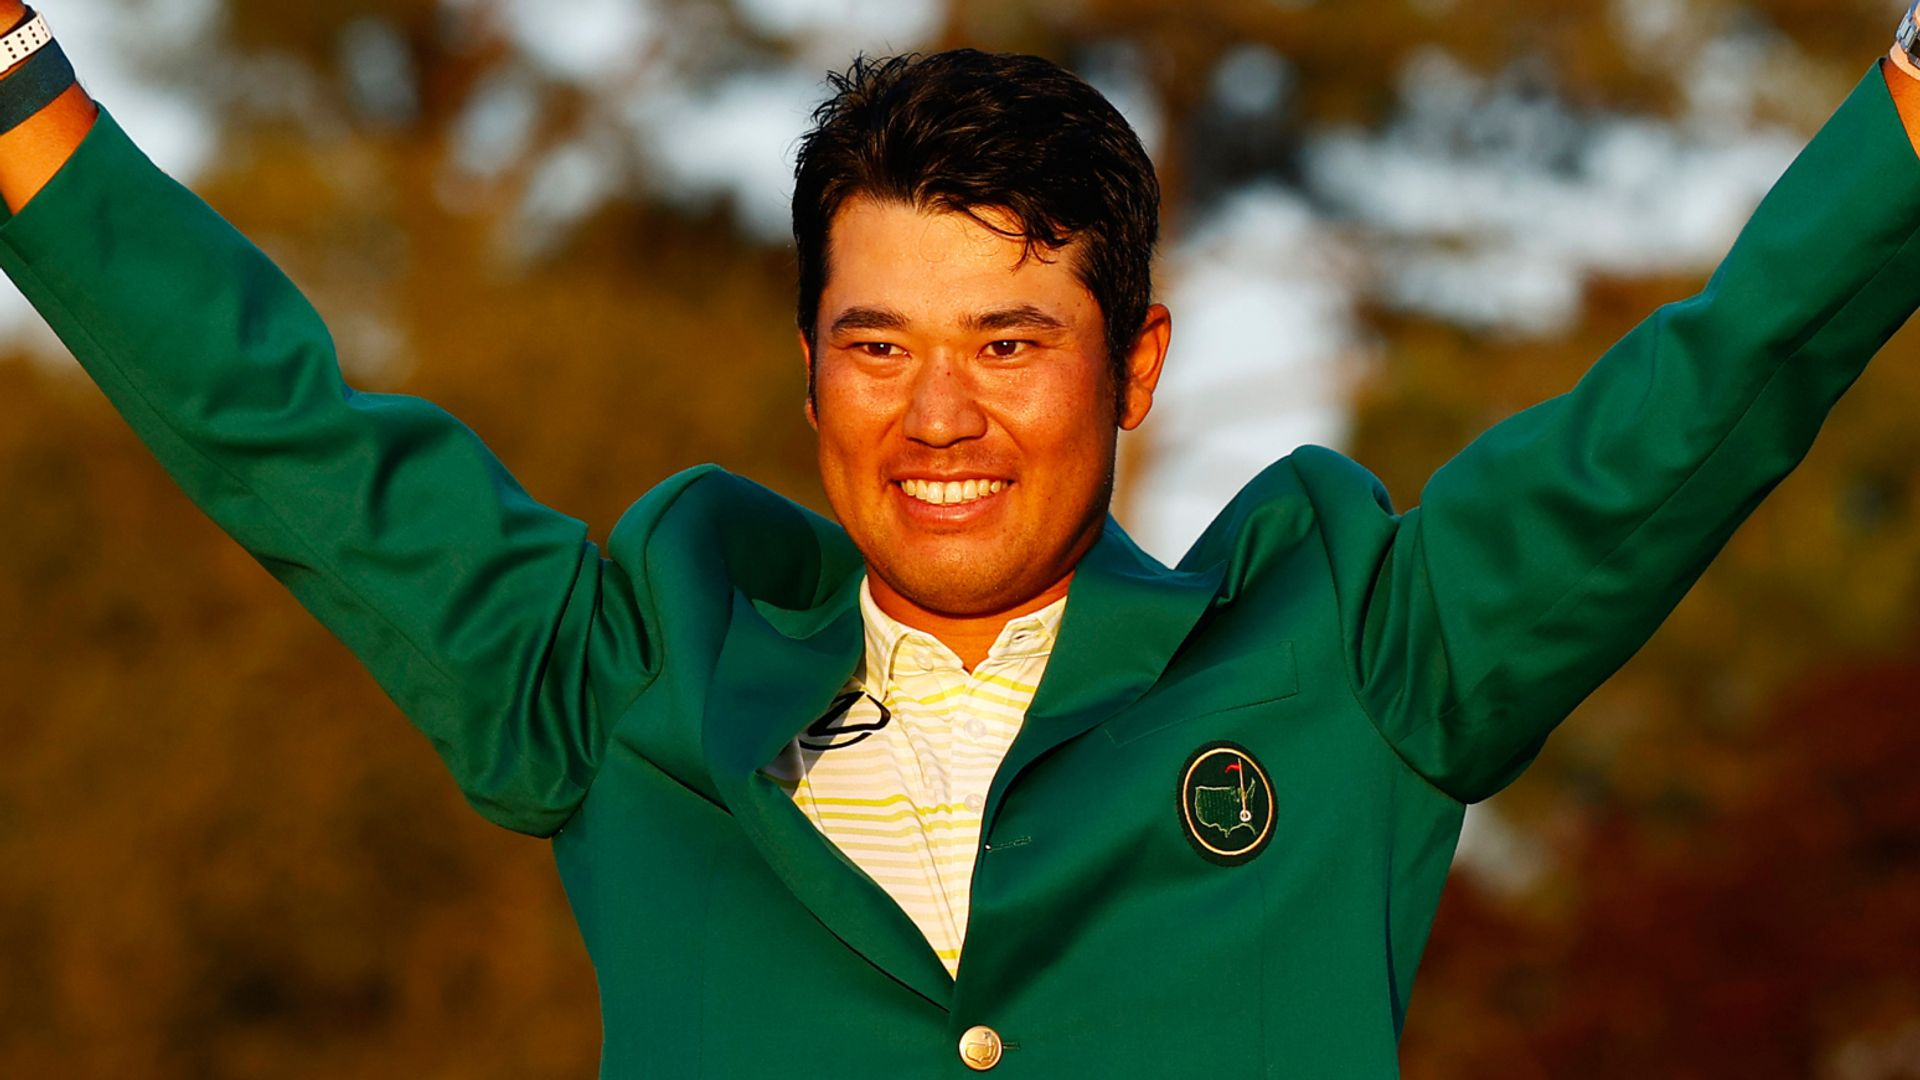 Masters champion Matsuyama back in action - sky sports